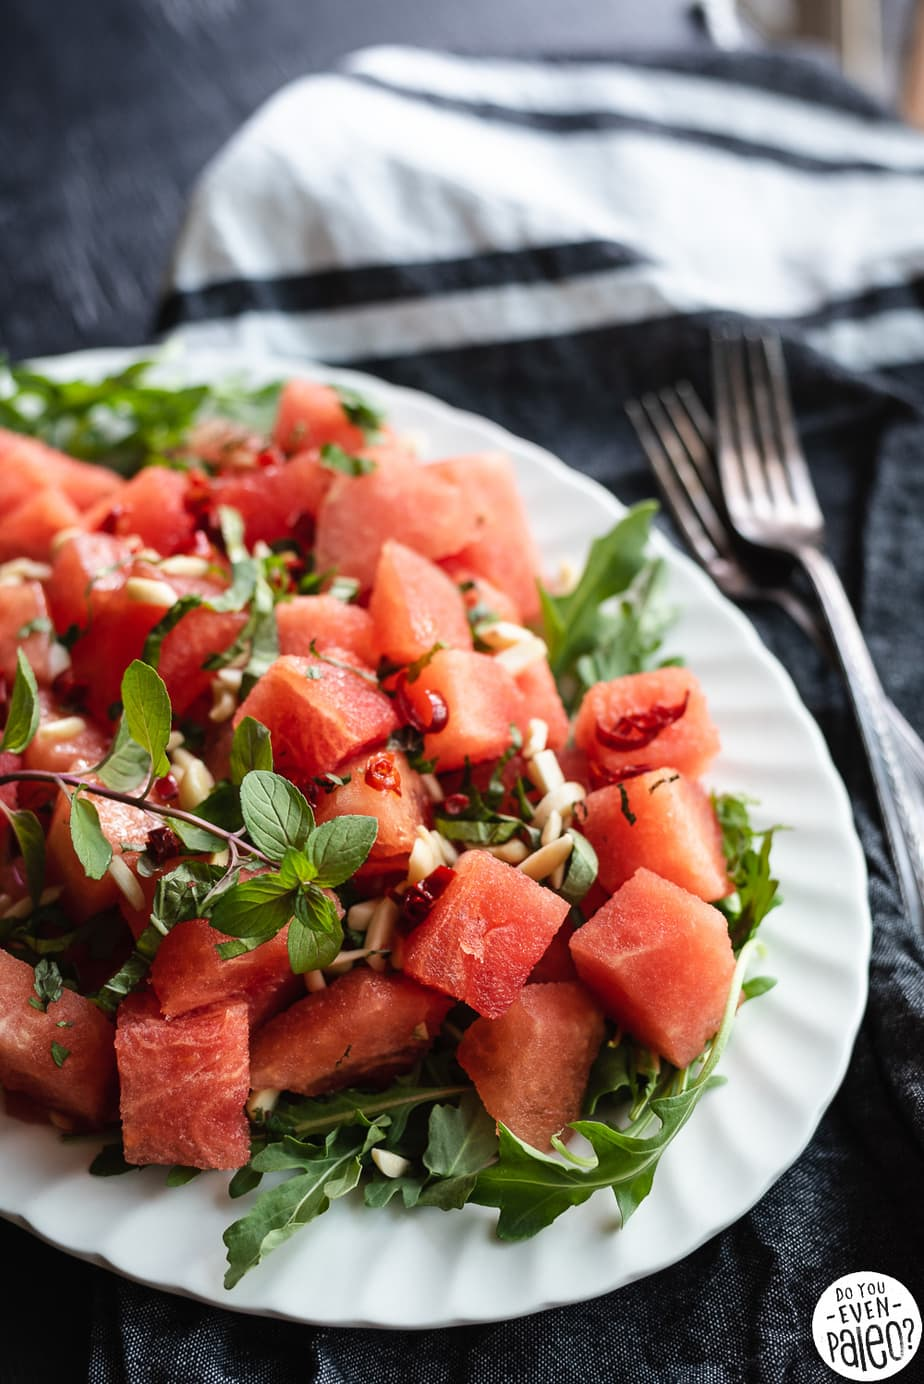 Watermelon Arugula Salad garnished with fresh herbs and almonds on a white plate.